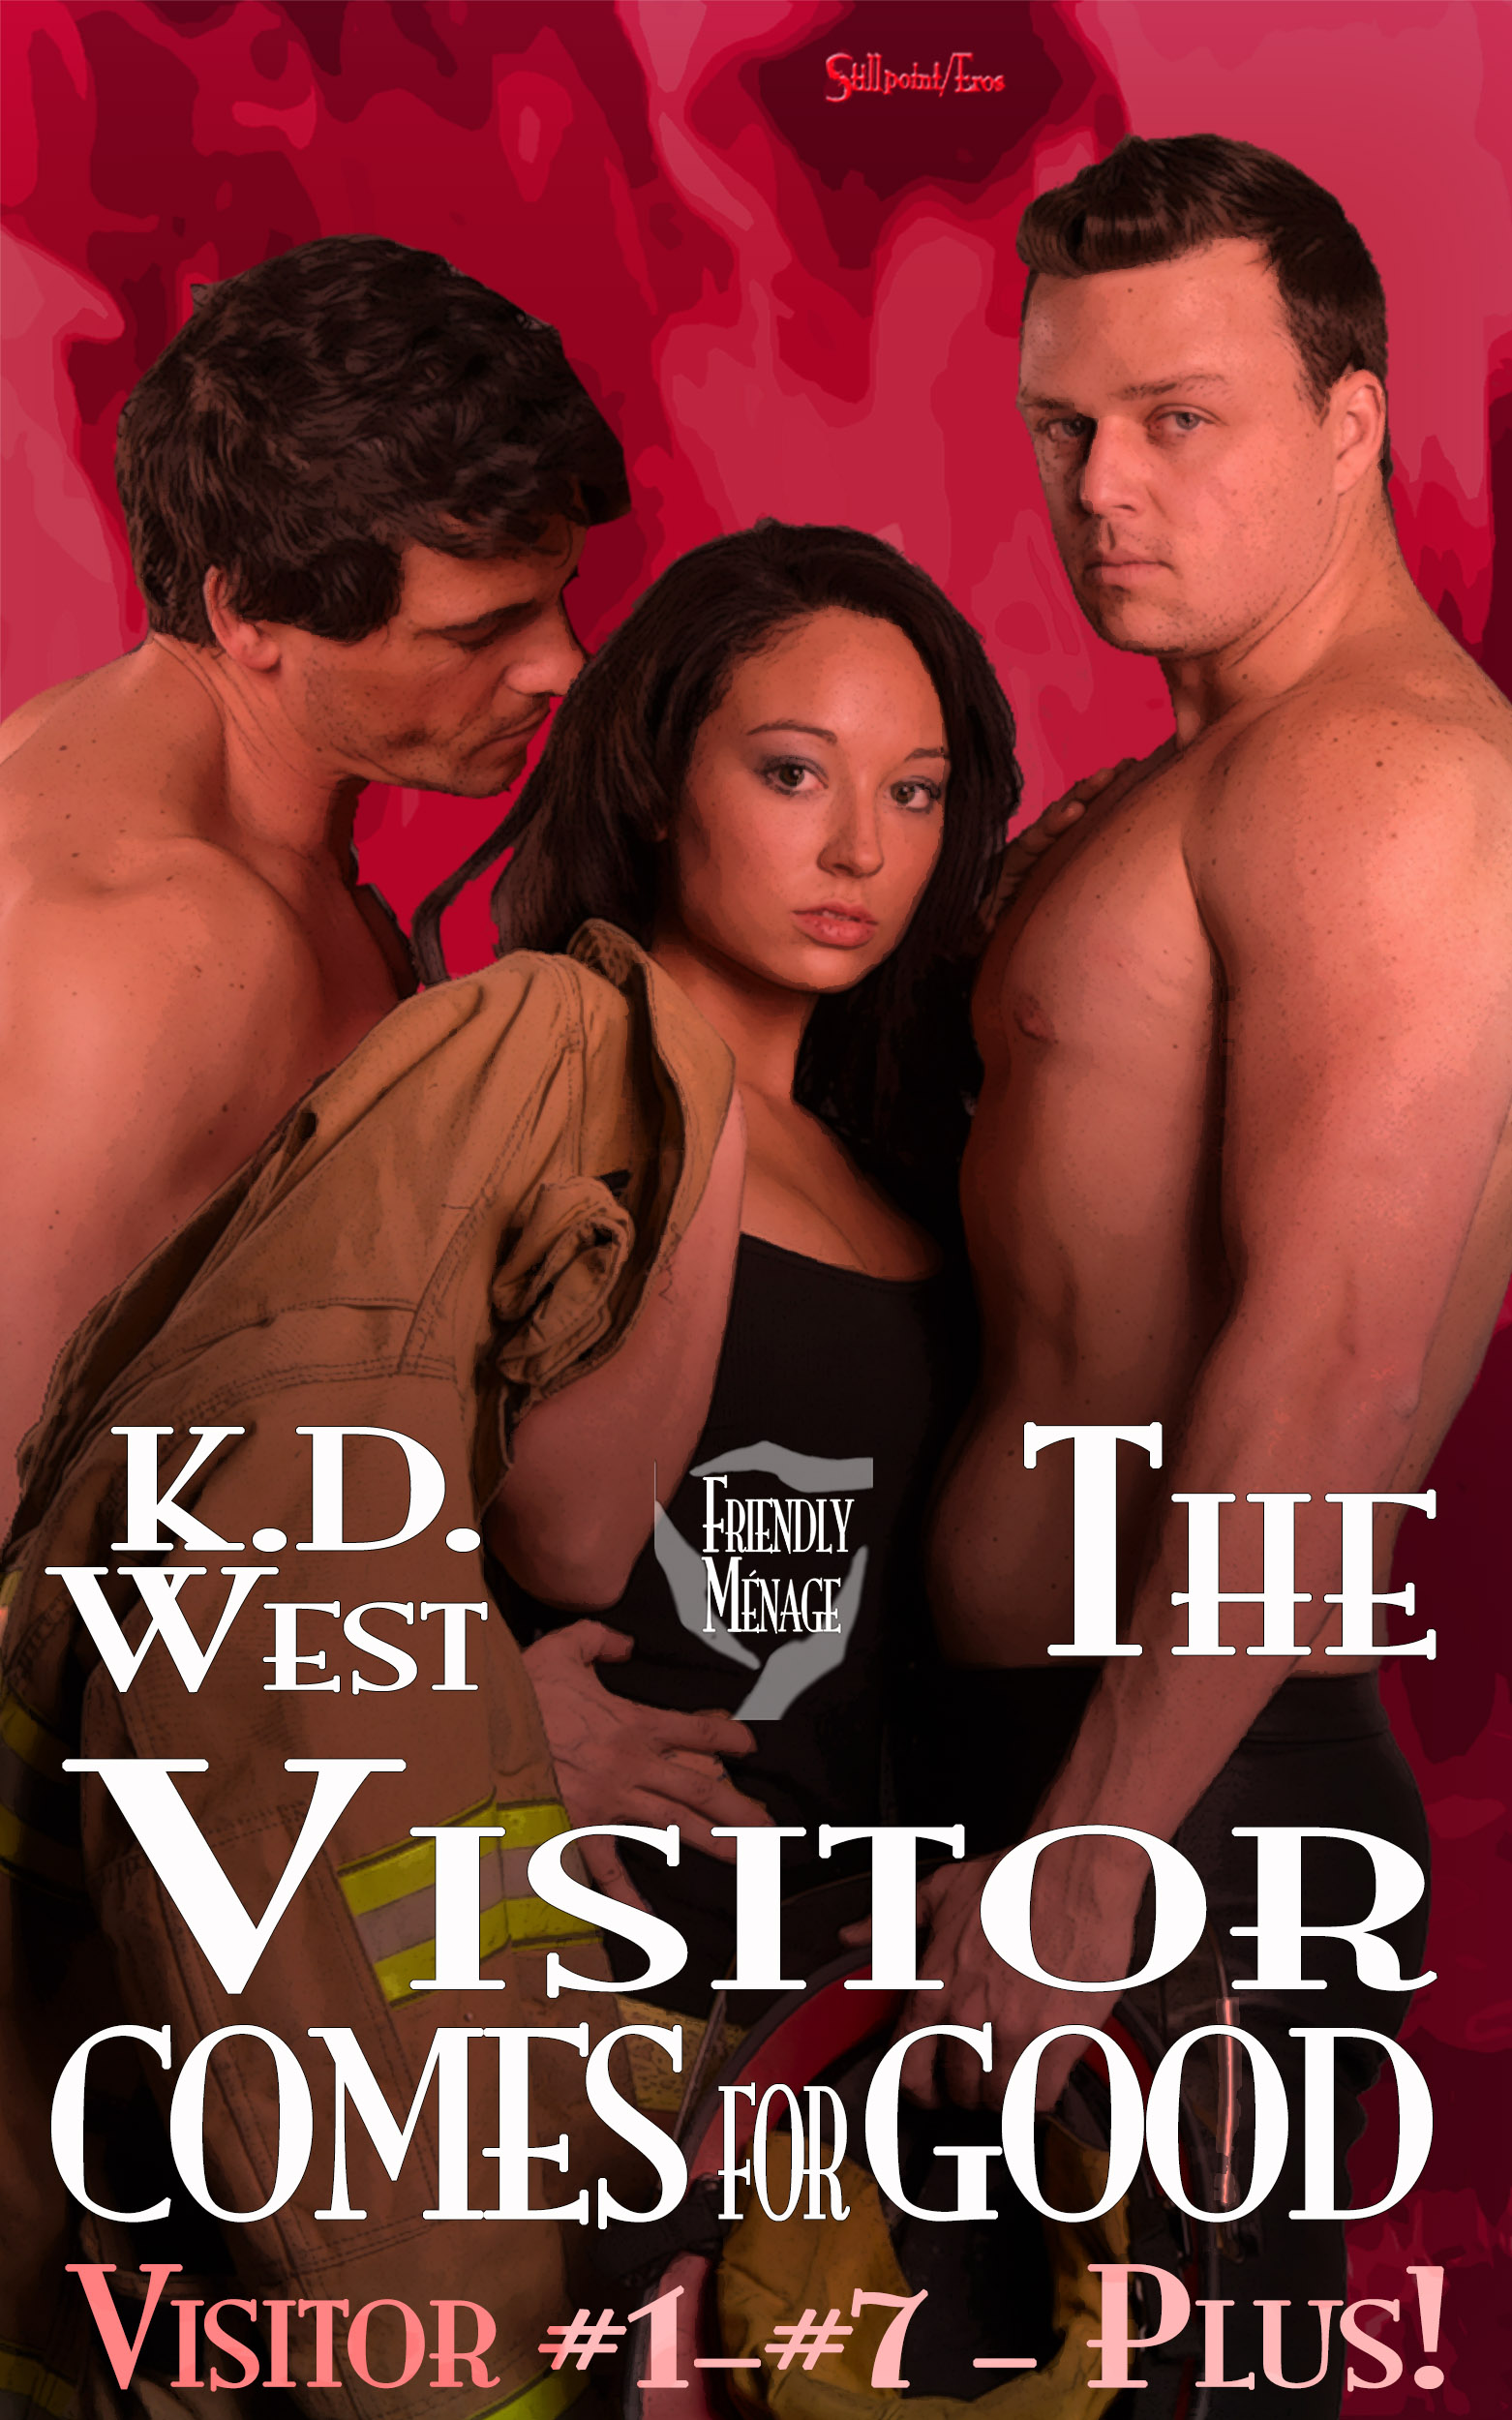 The Visitor Comes for Good — Friendly MMF Menage Tale